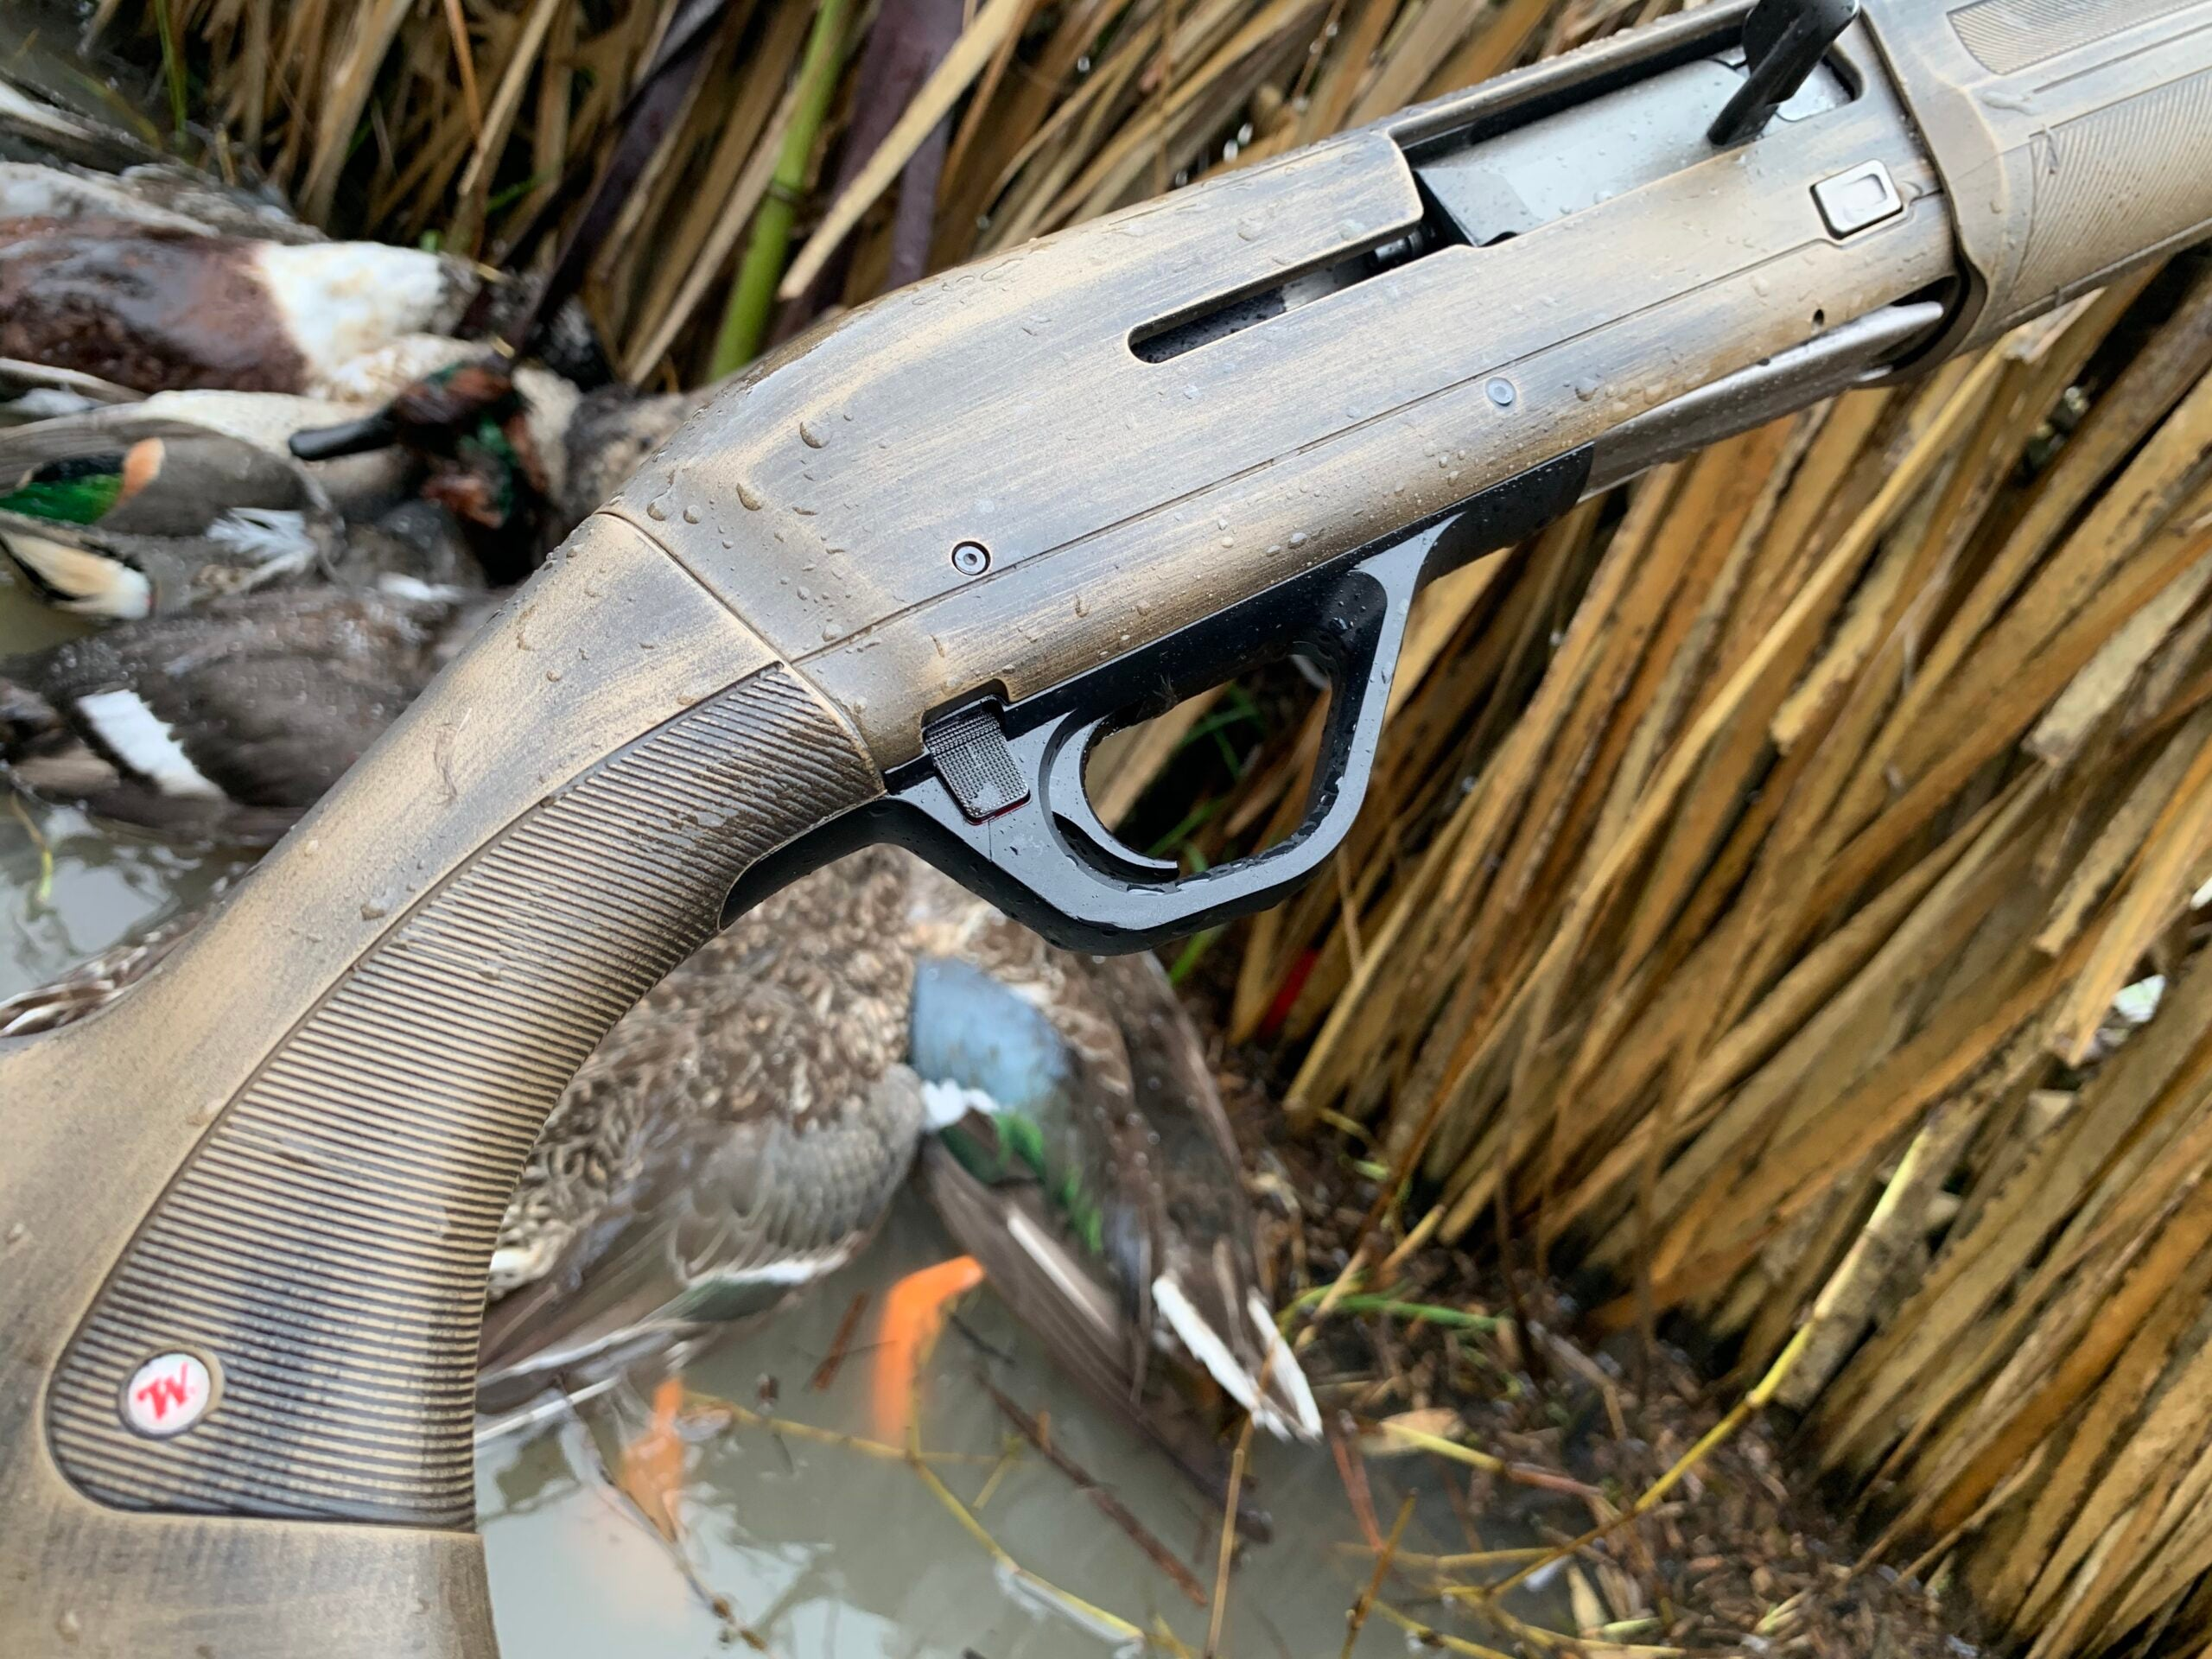 Putting the SX4 to the test on Texas ducks.